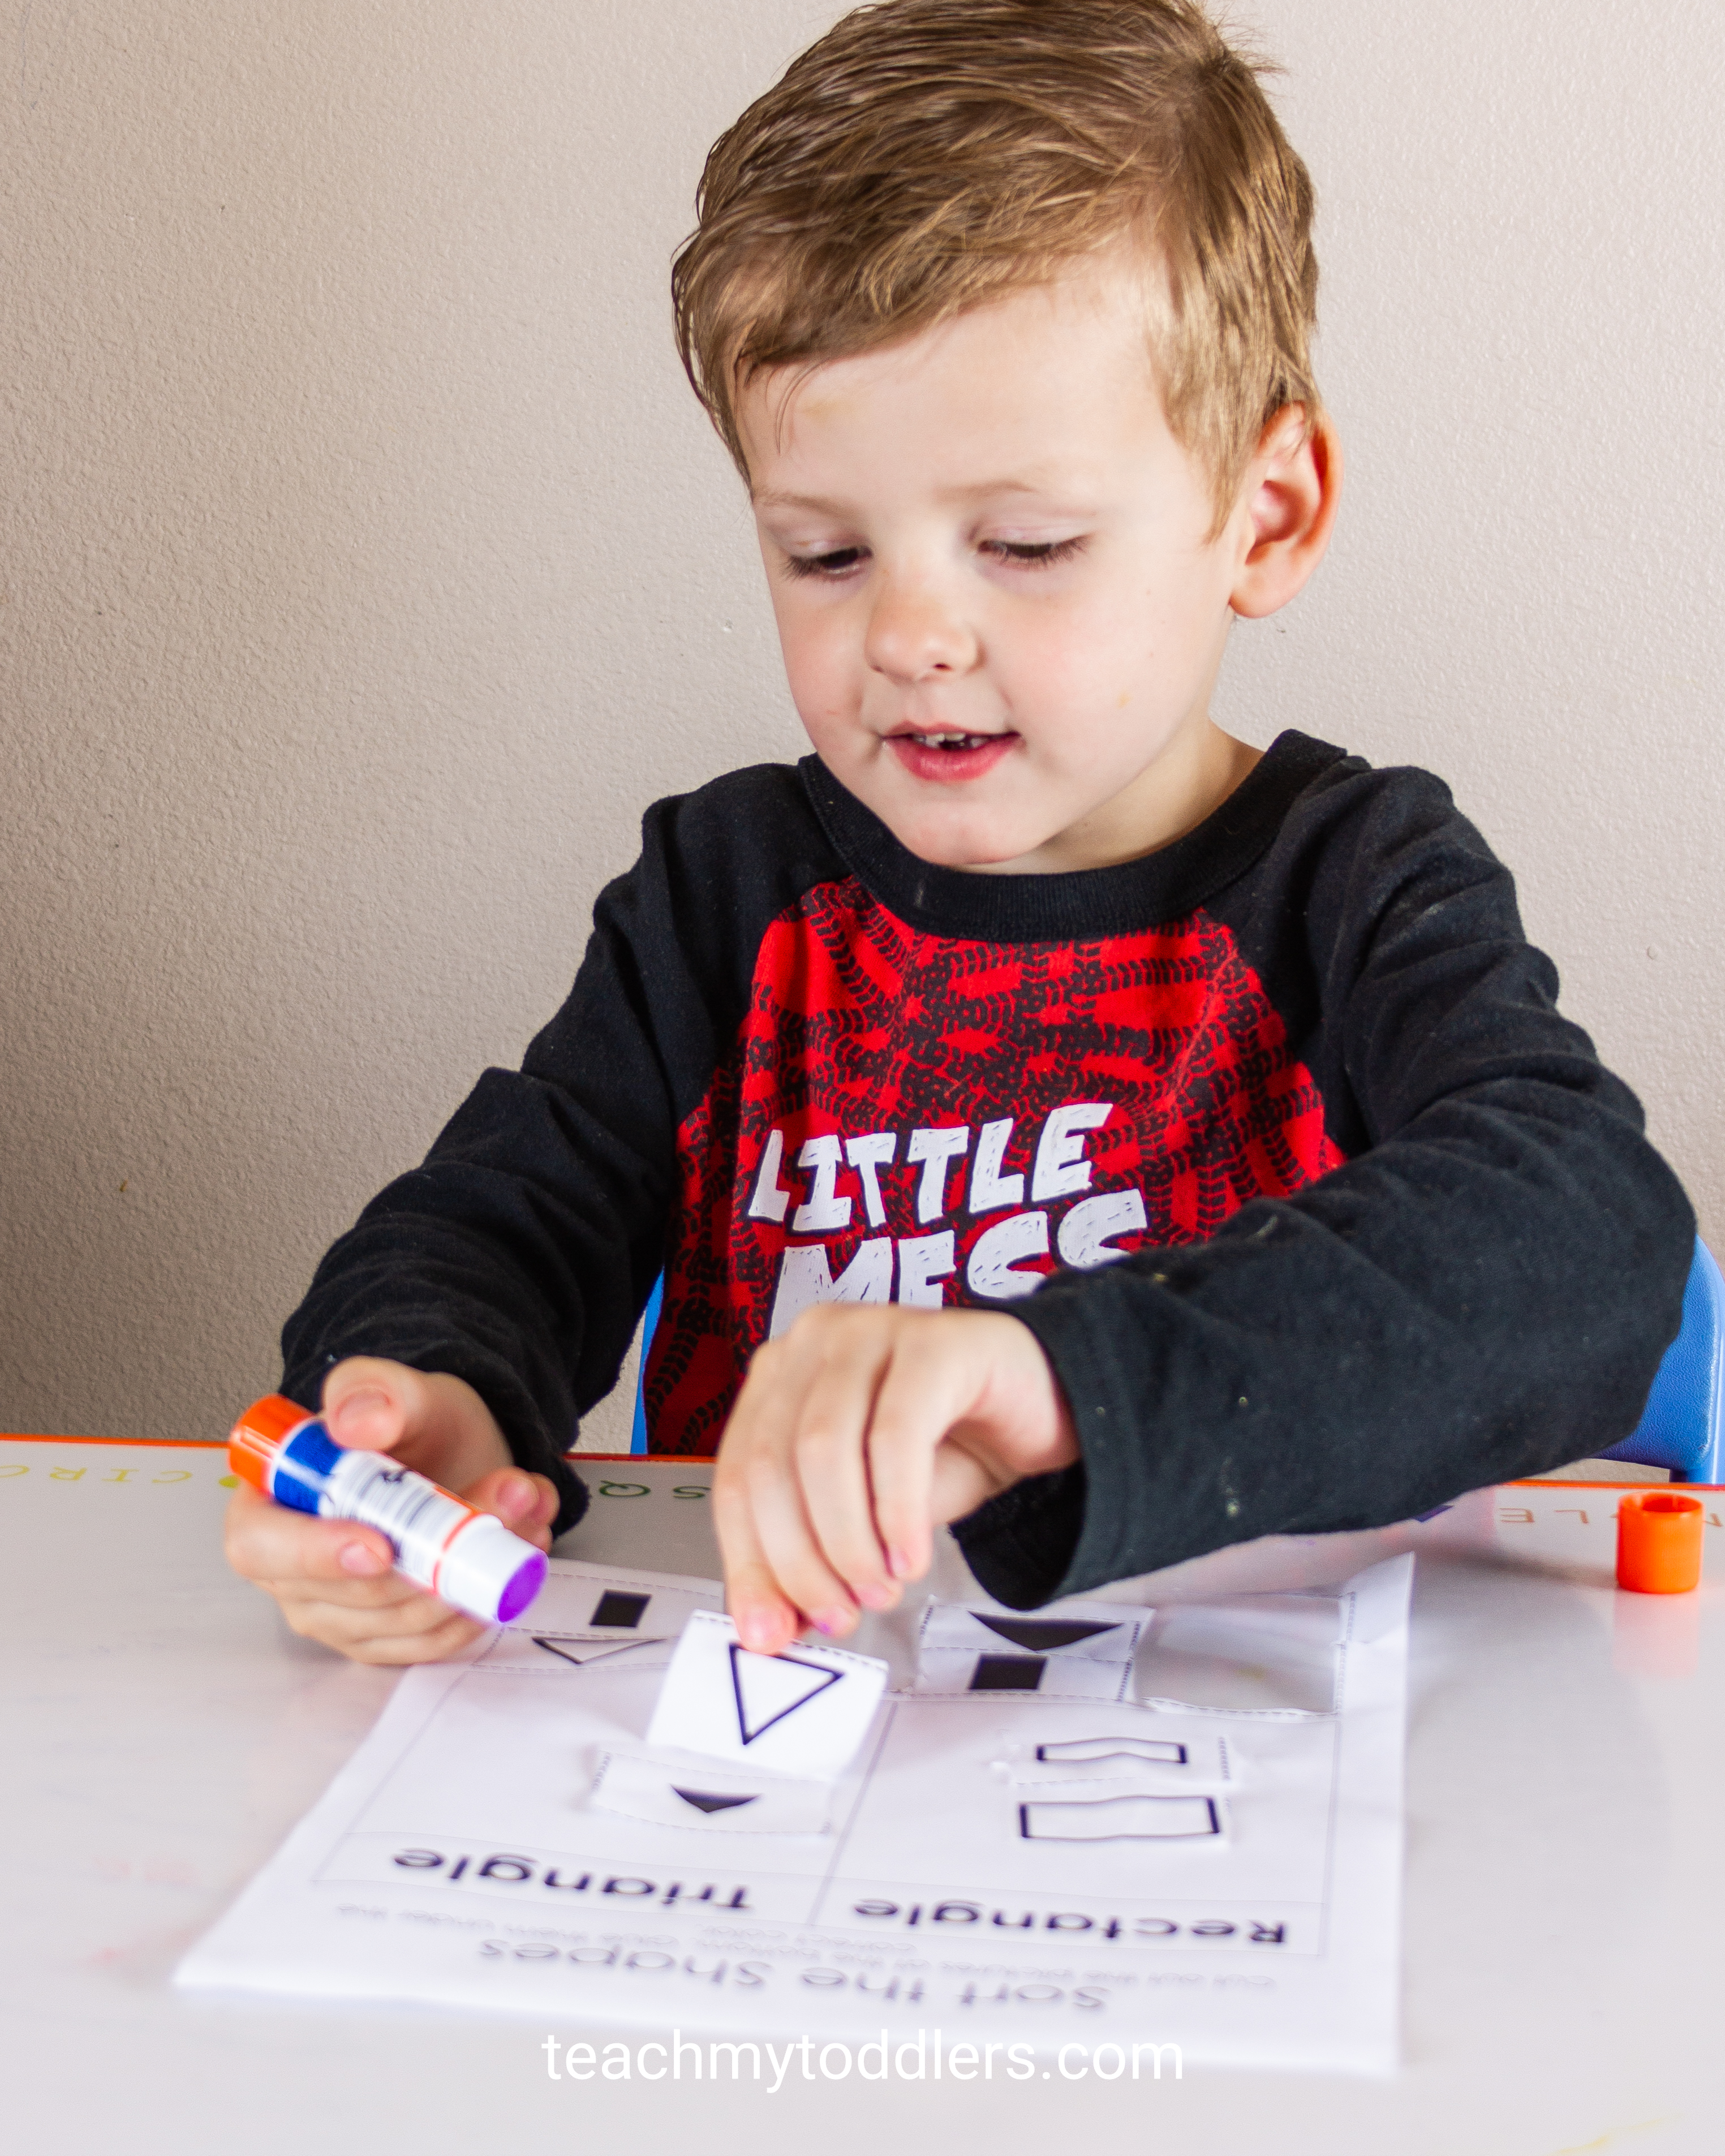 Discover how to use this shape sorting cut and paste activity to teach your preschoolers shapes